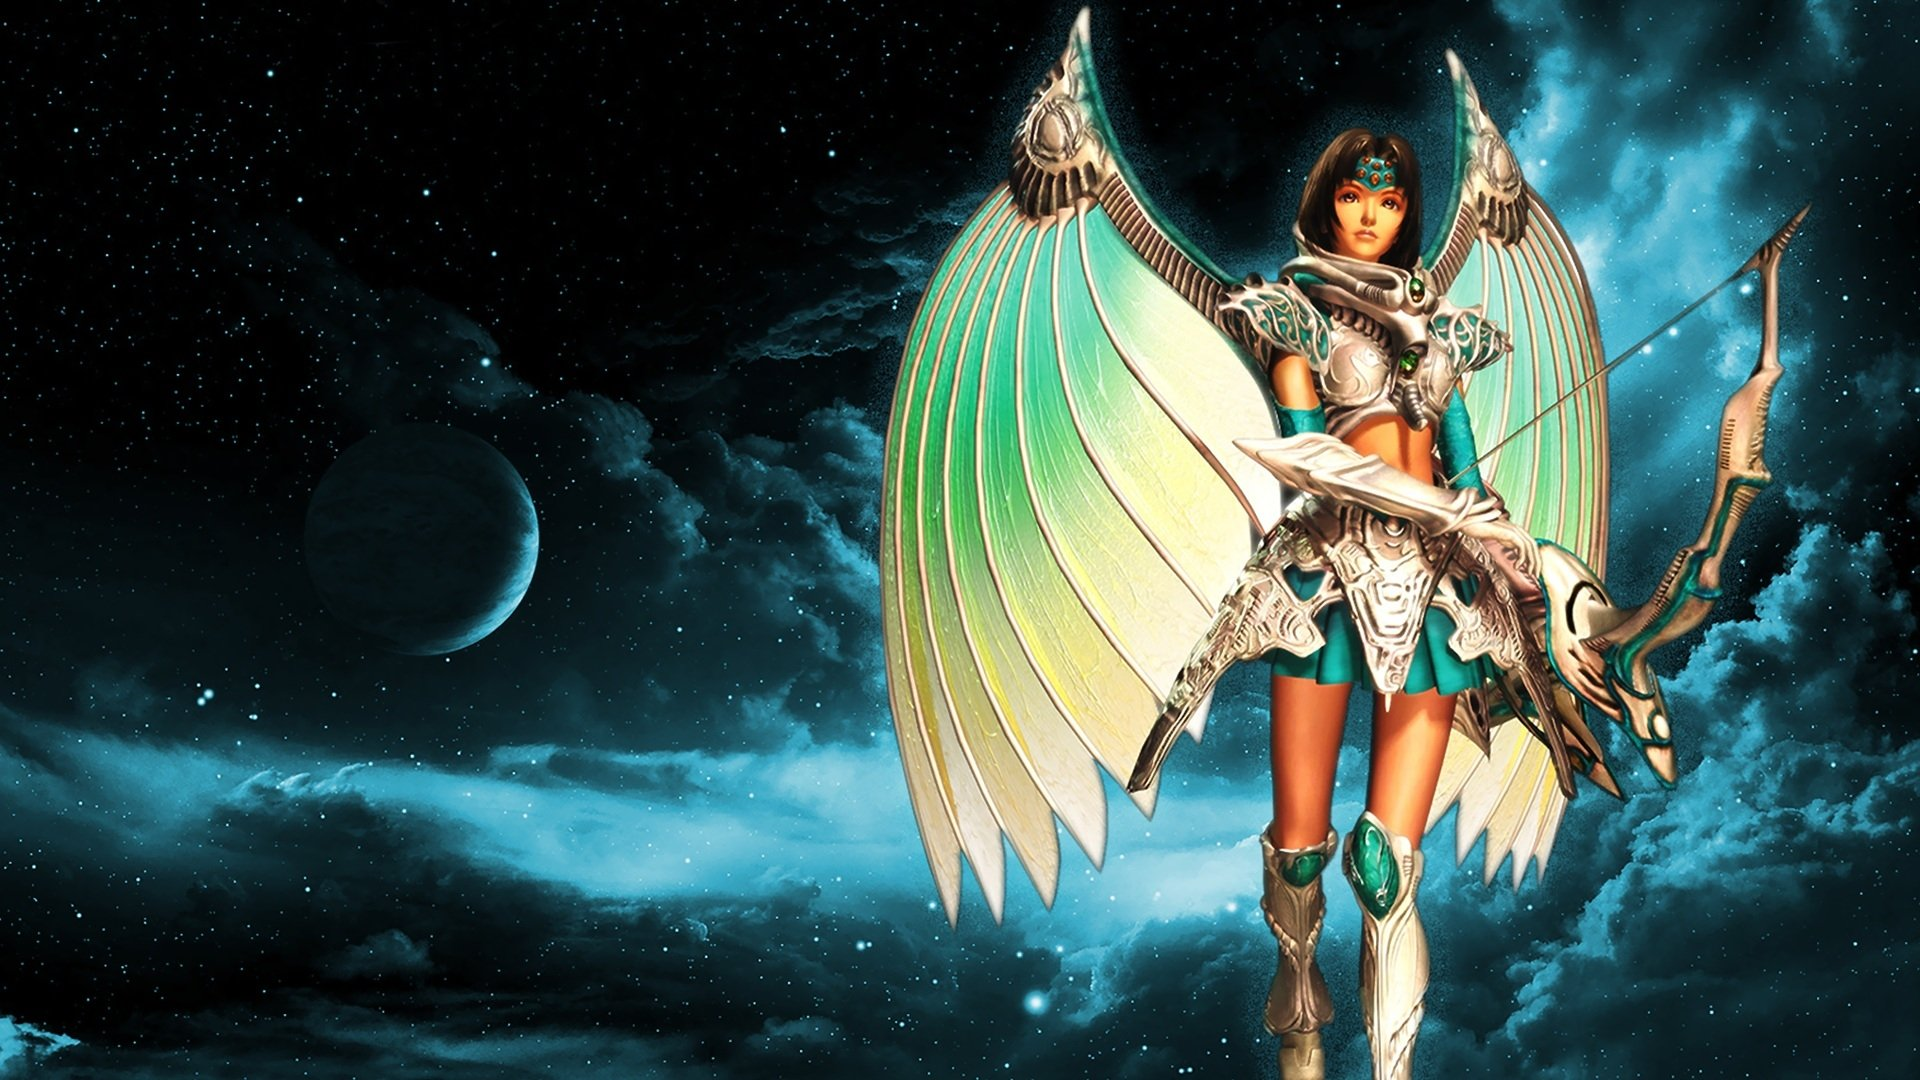 13 The Legend Of Dragoon Hd Wallpapers Background Images